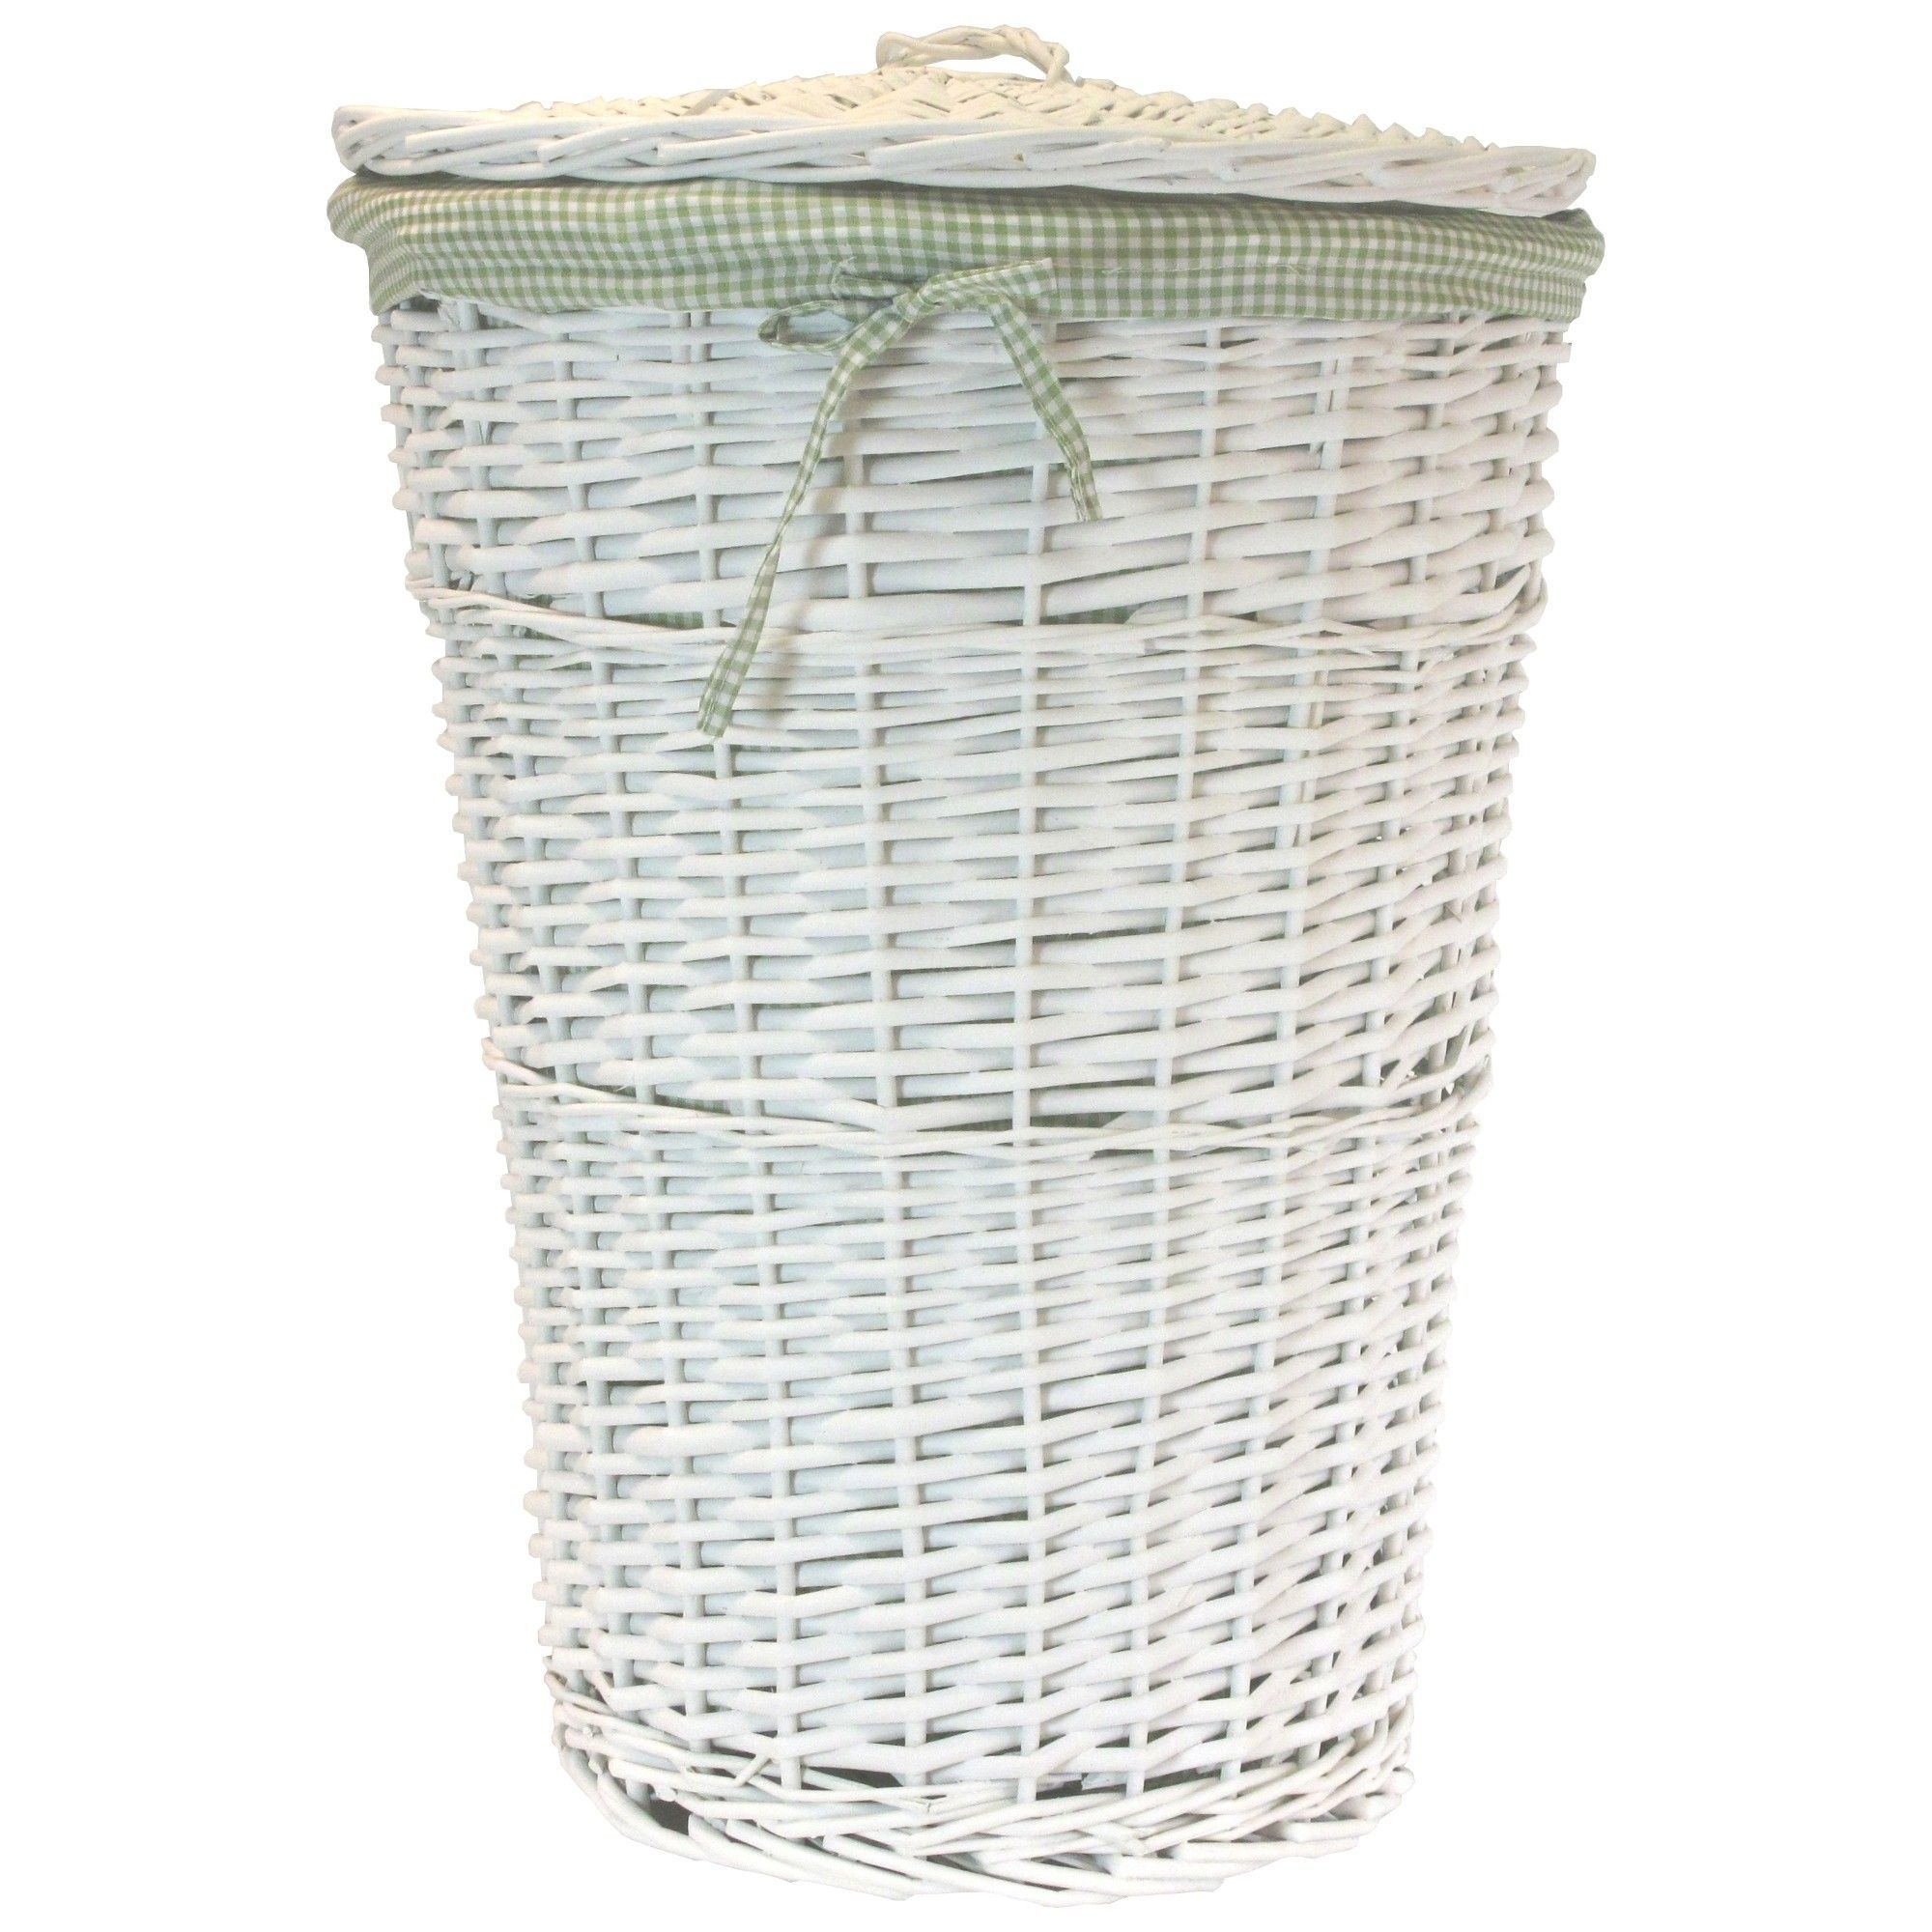 Jordyn Laundry Hamper Liner Laundry Hamper Hamper Wicker